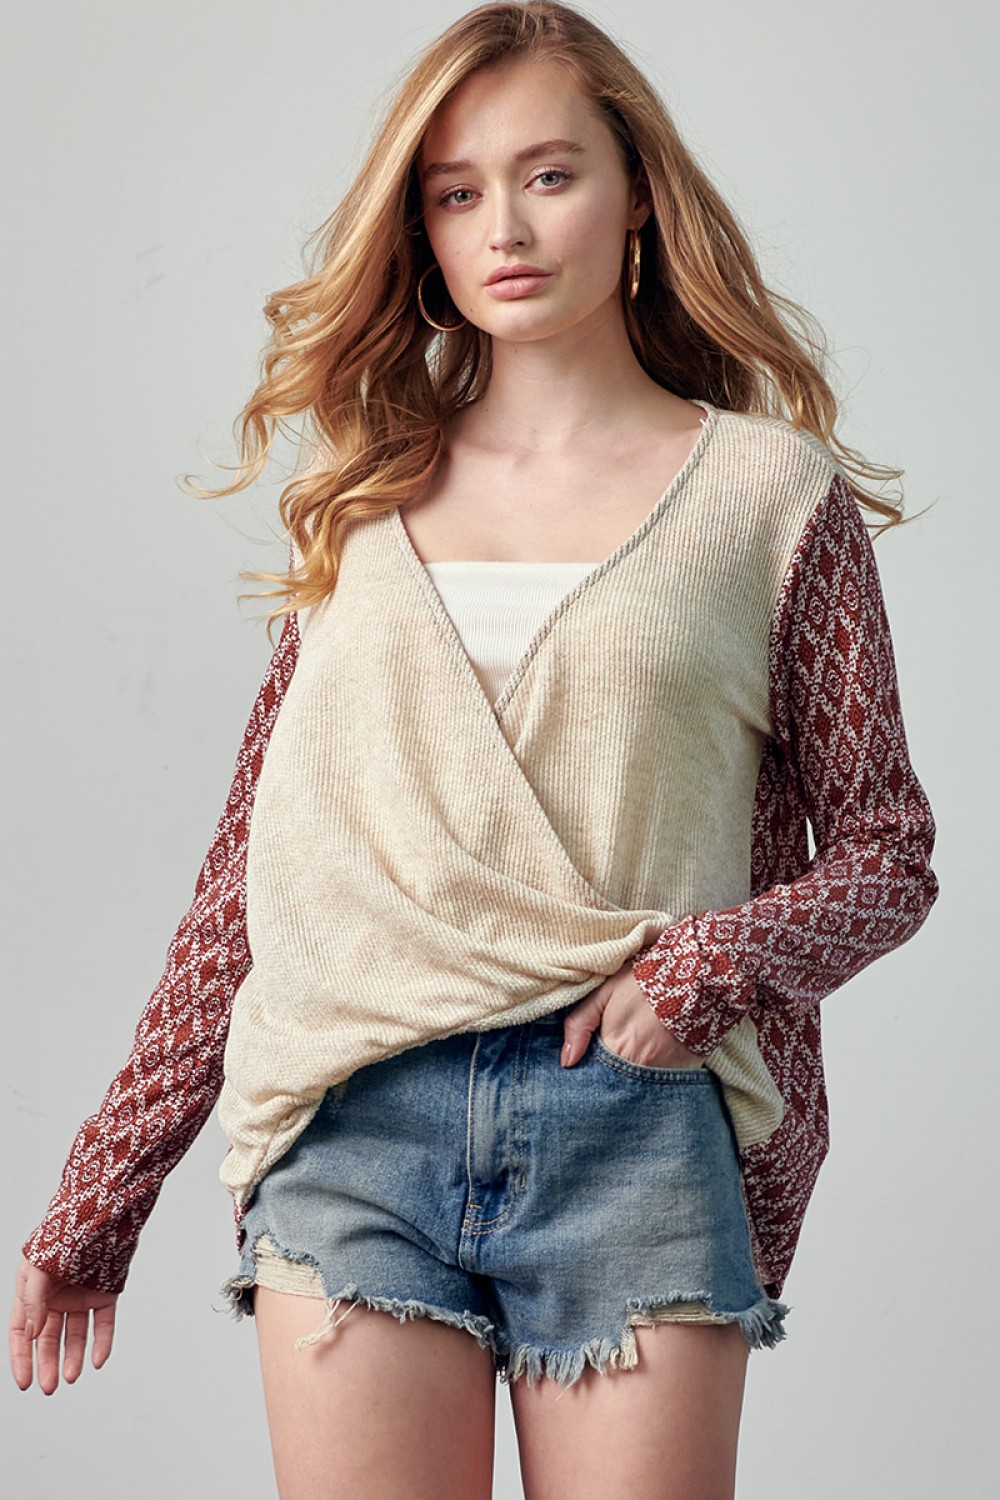 TY10843<br/>Long Printed Sleeve Surplus Top with Contrast Front